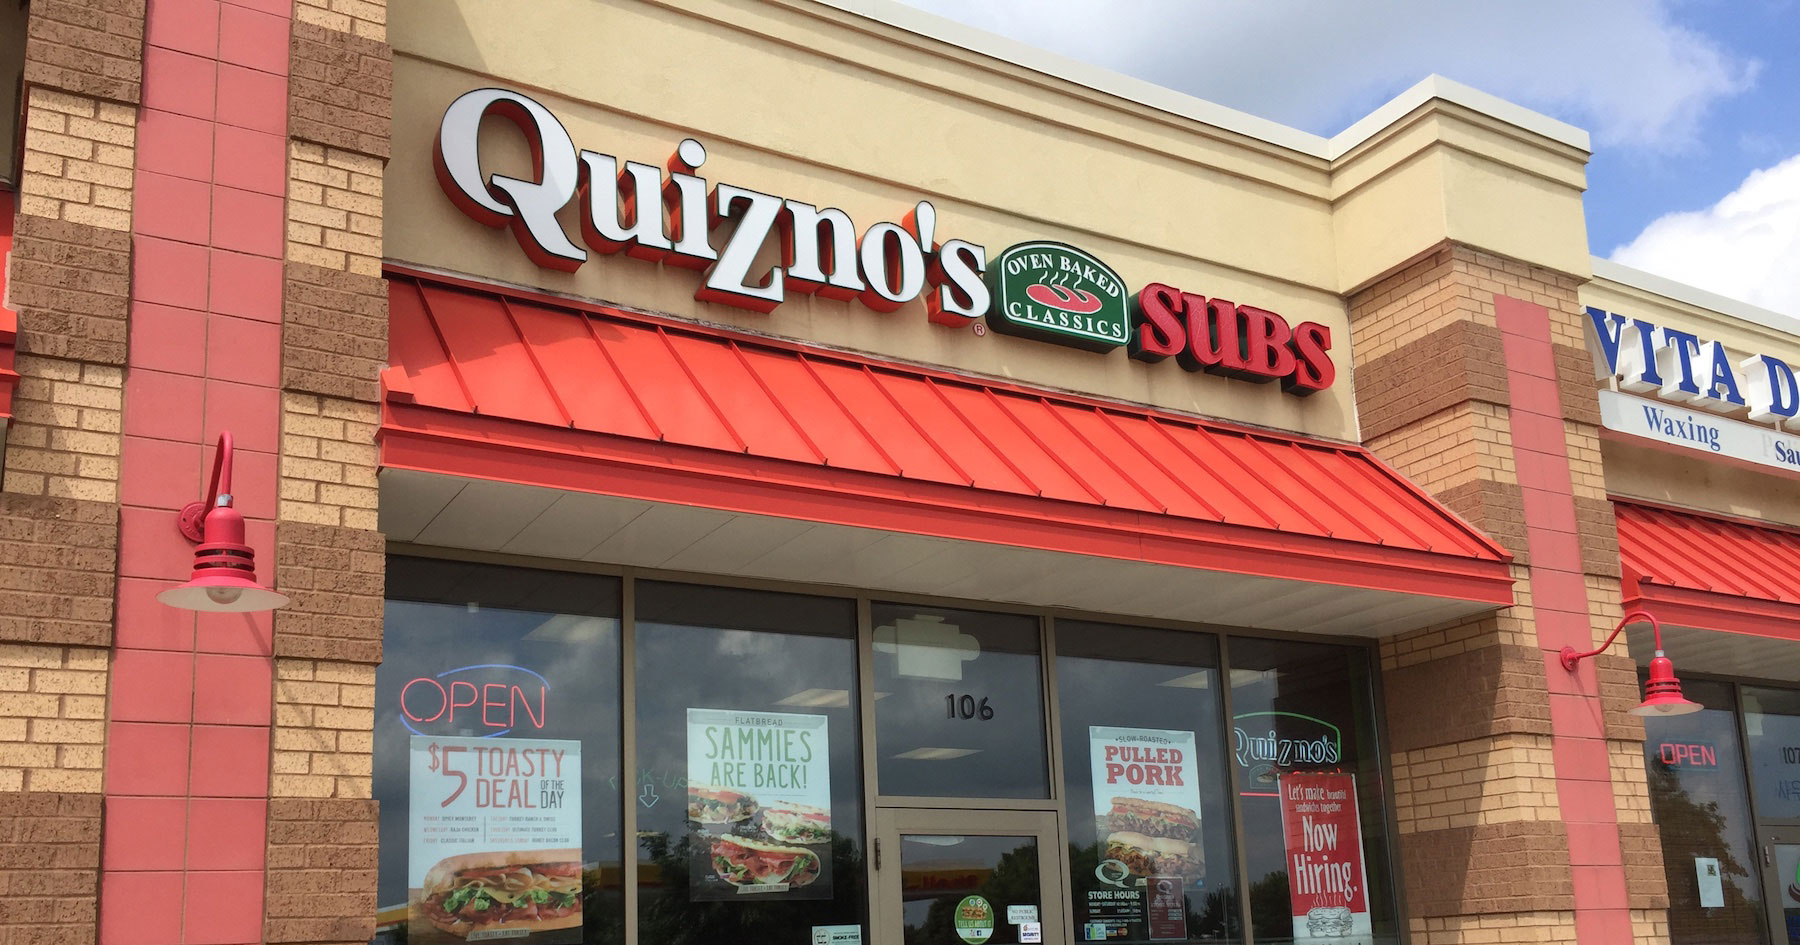 A brief history of Quiznos' collapse